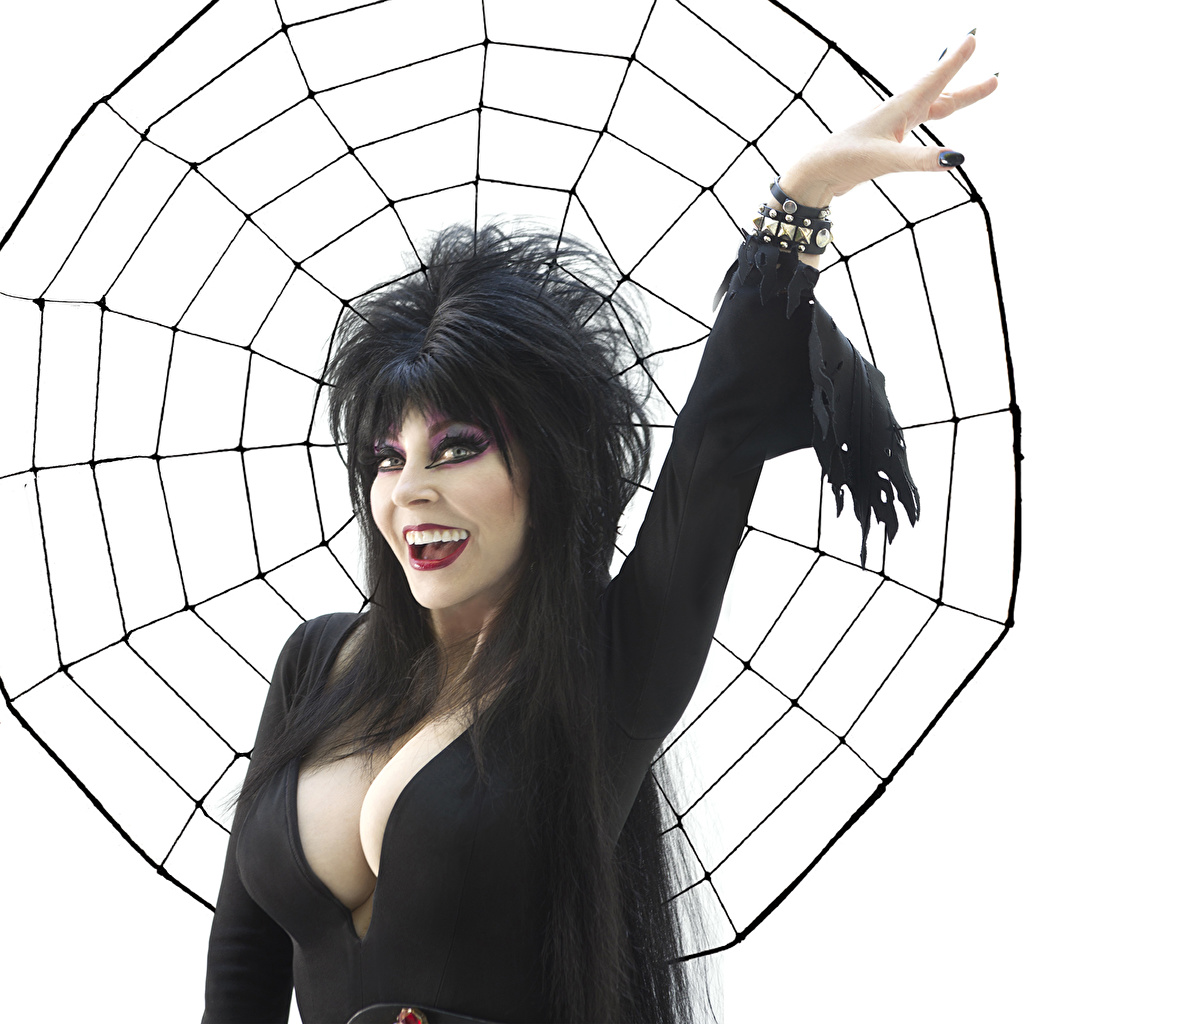 Wallpapers Elvira Mistress of the Dark Breast Brunette 1194x1024